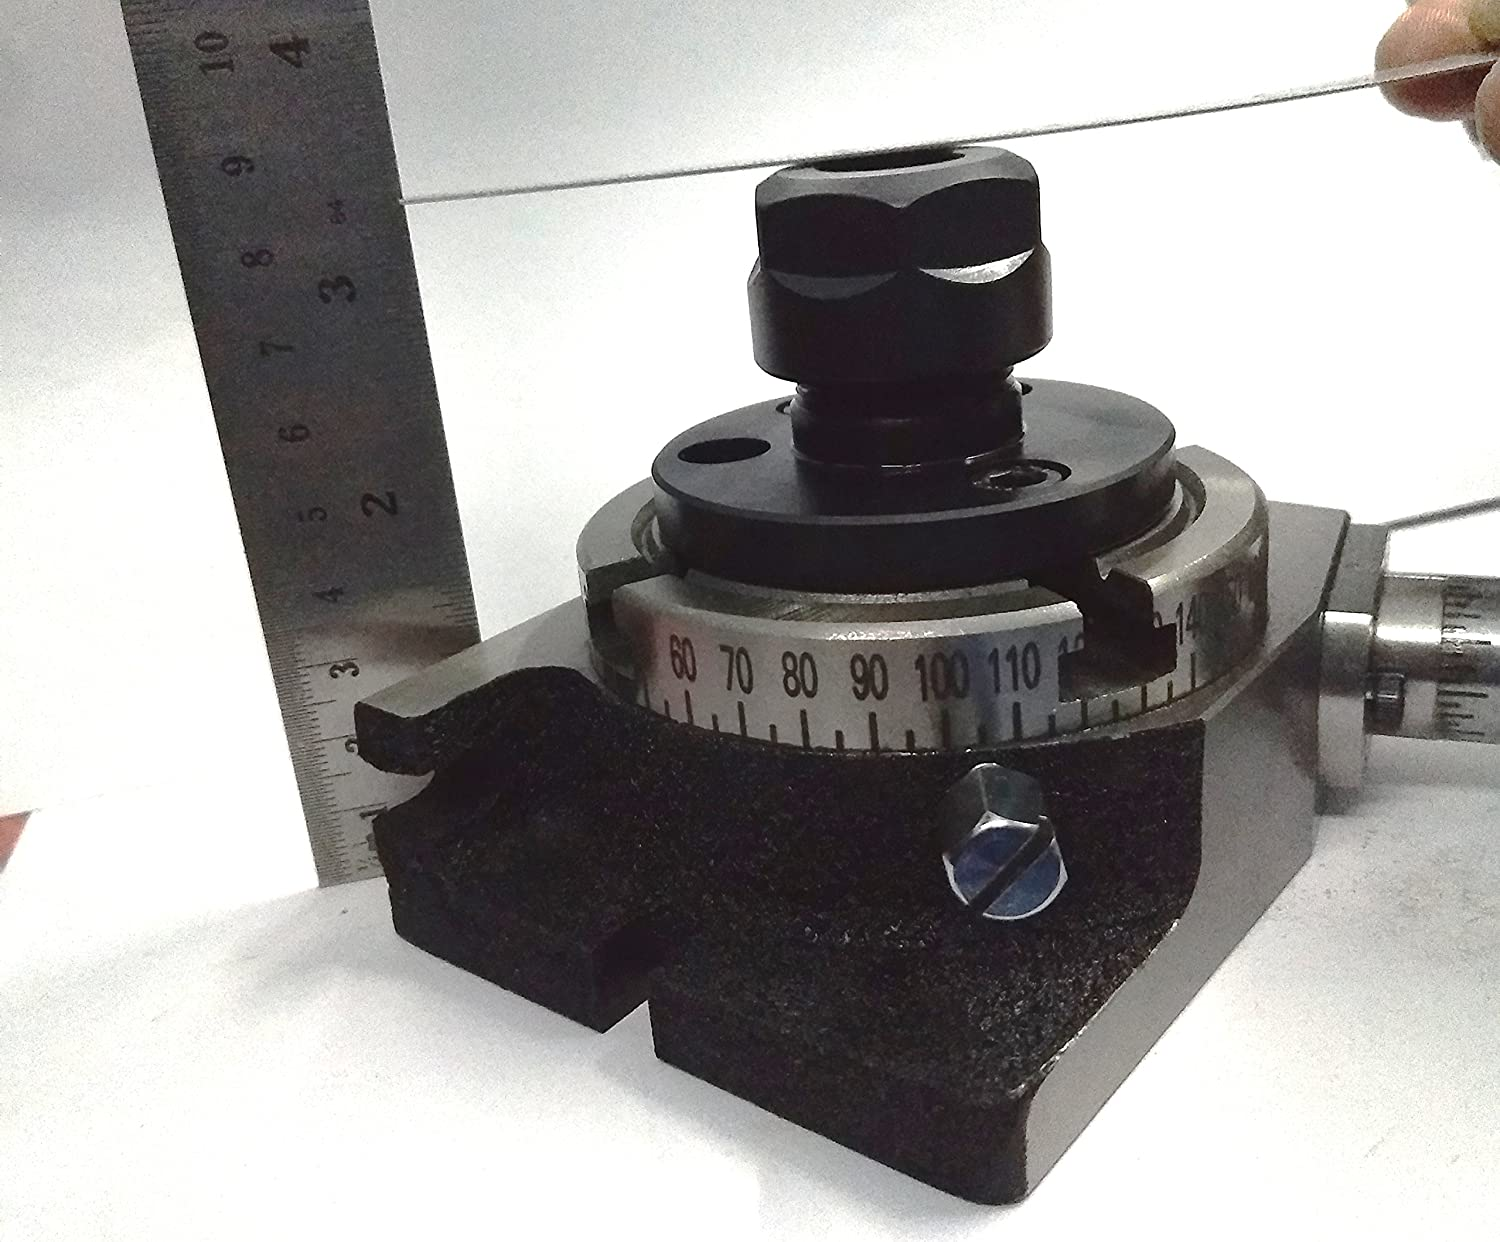 Rotary Table 3// 80 mm with ER-20 Collet Adapter for Instant Milling Machine Engineering Tools